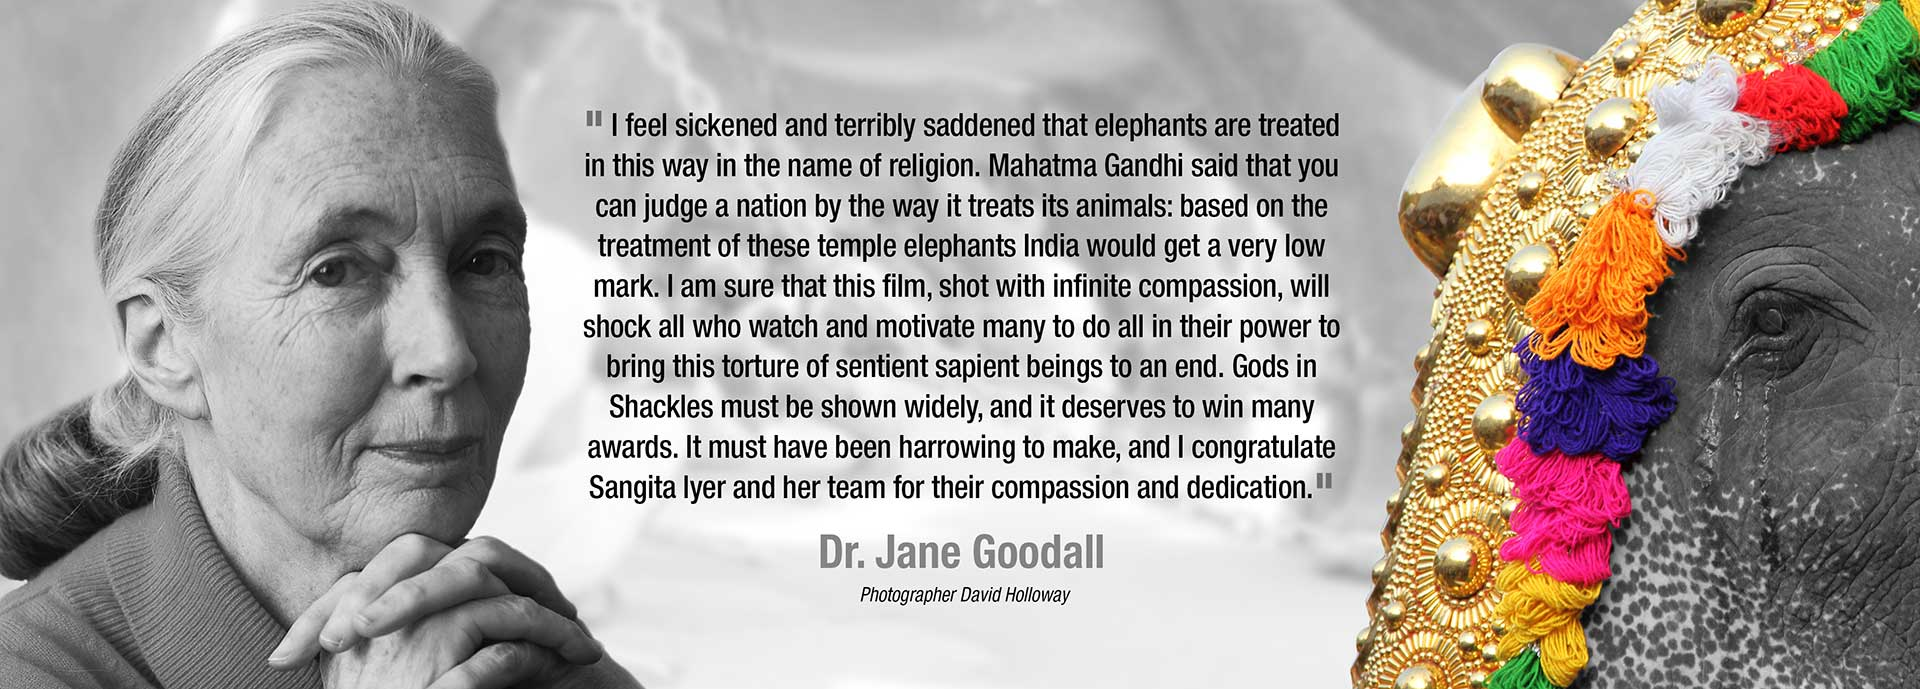 godsinshackles-janegoodall-endorsement